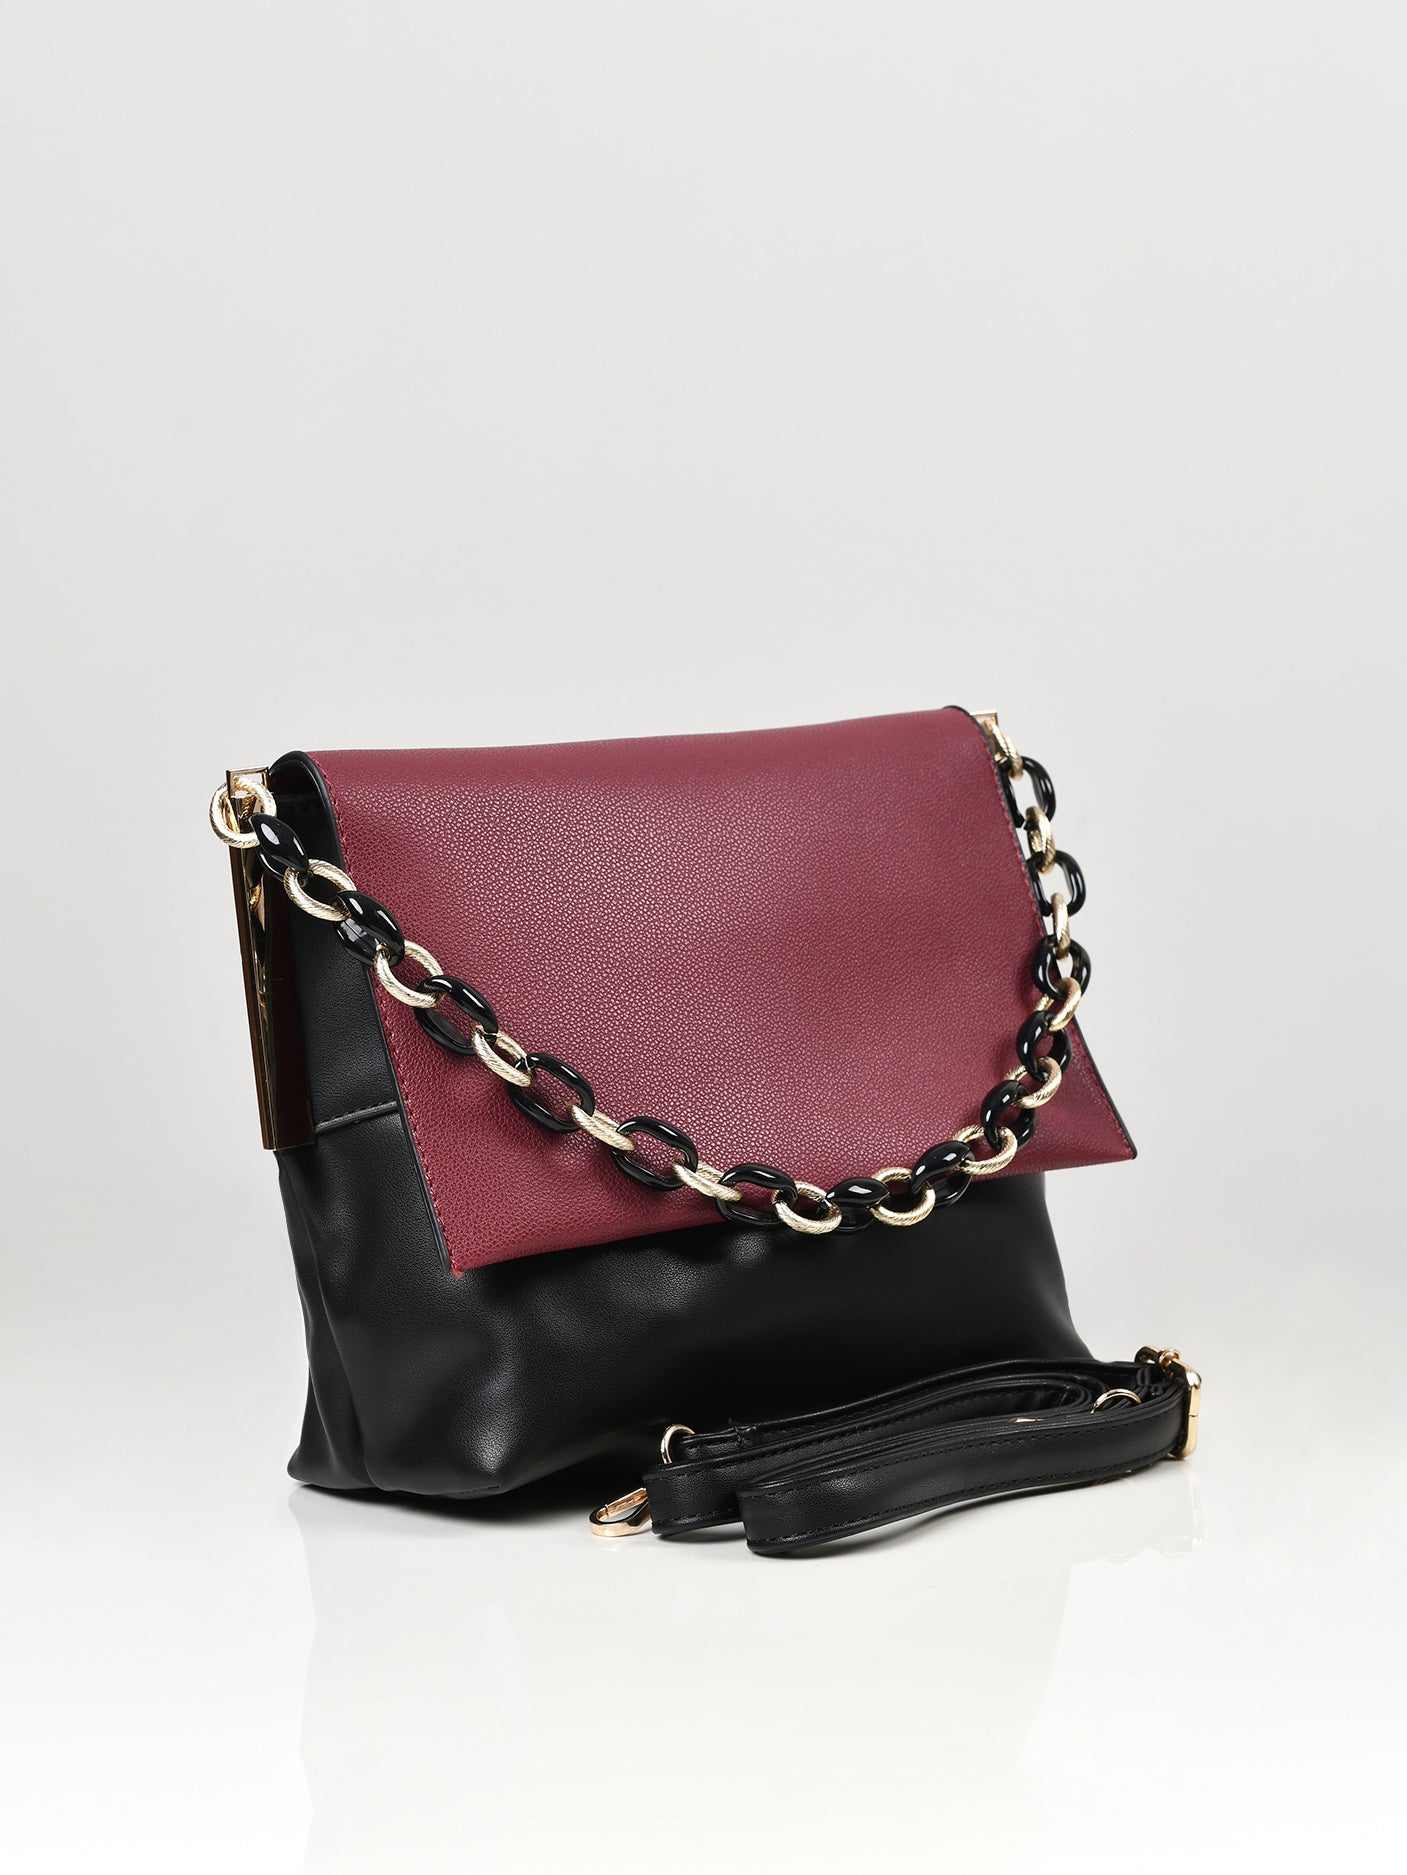 Two Toned Handbag